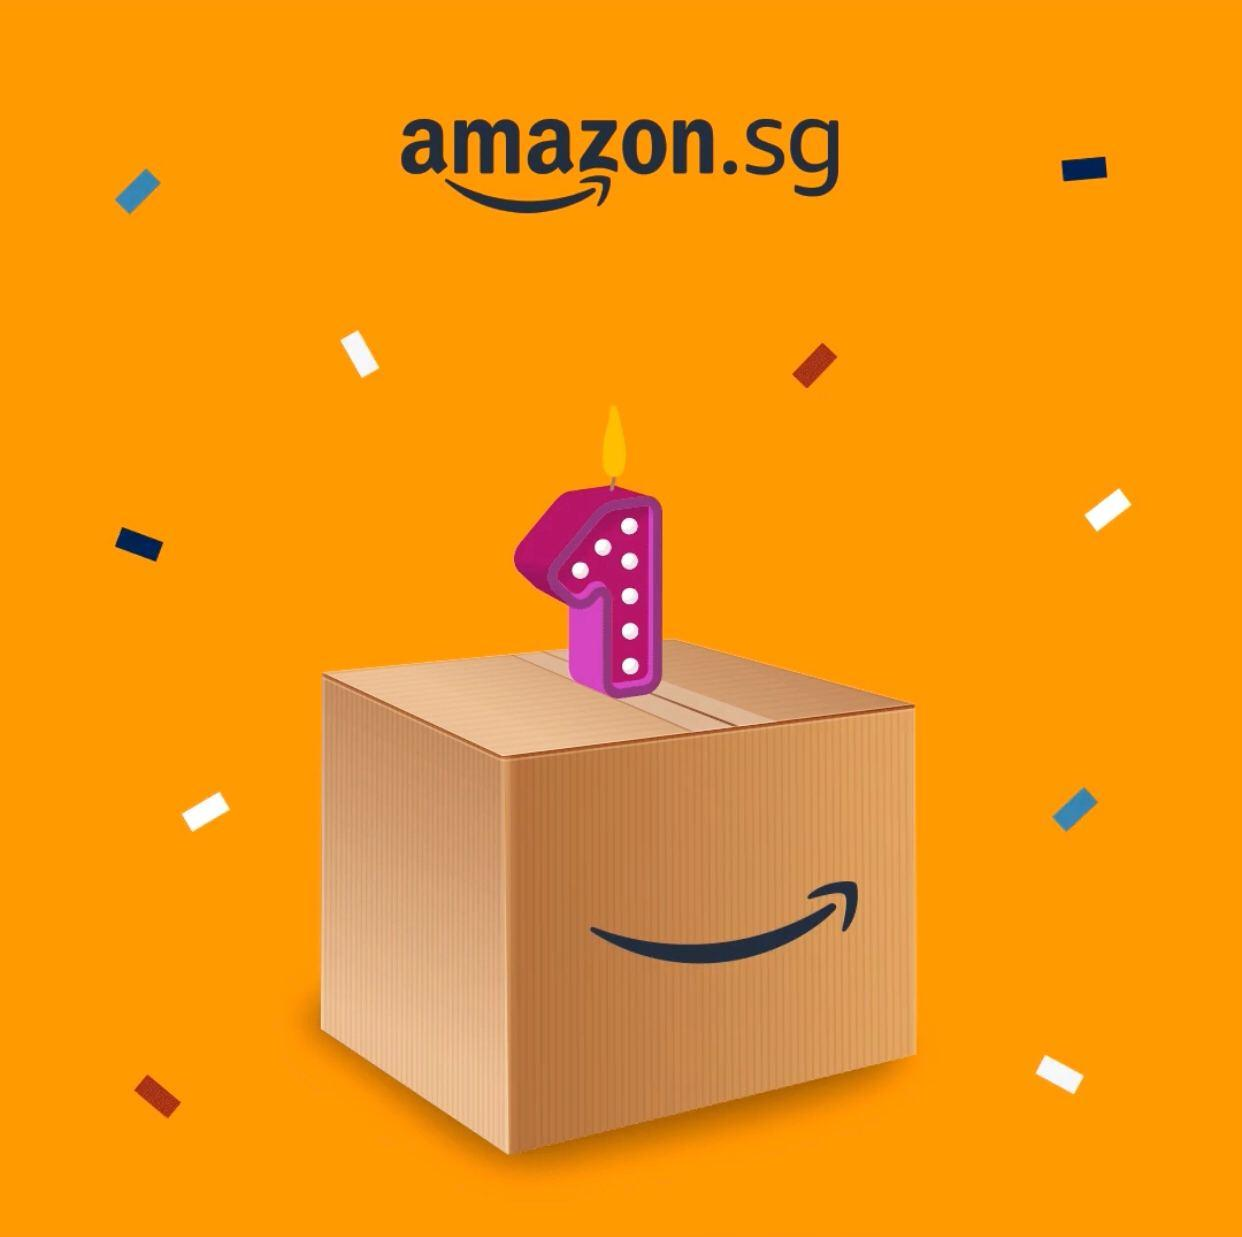 Amazon.sg Turns One